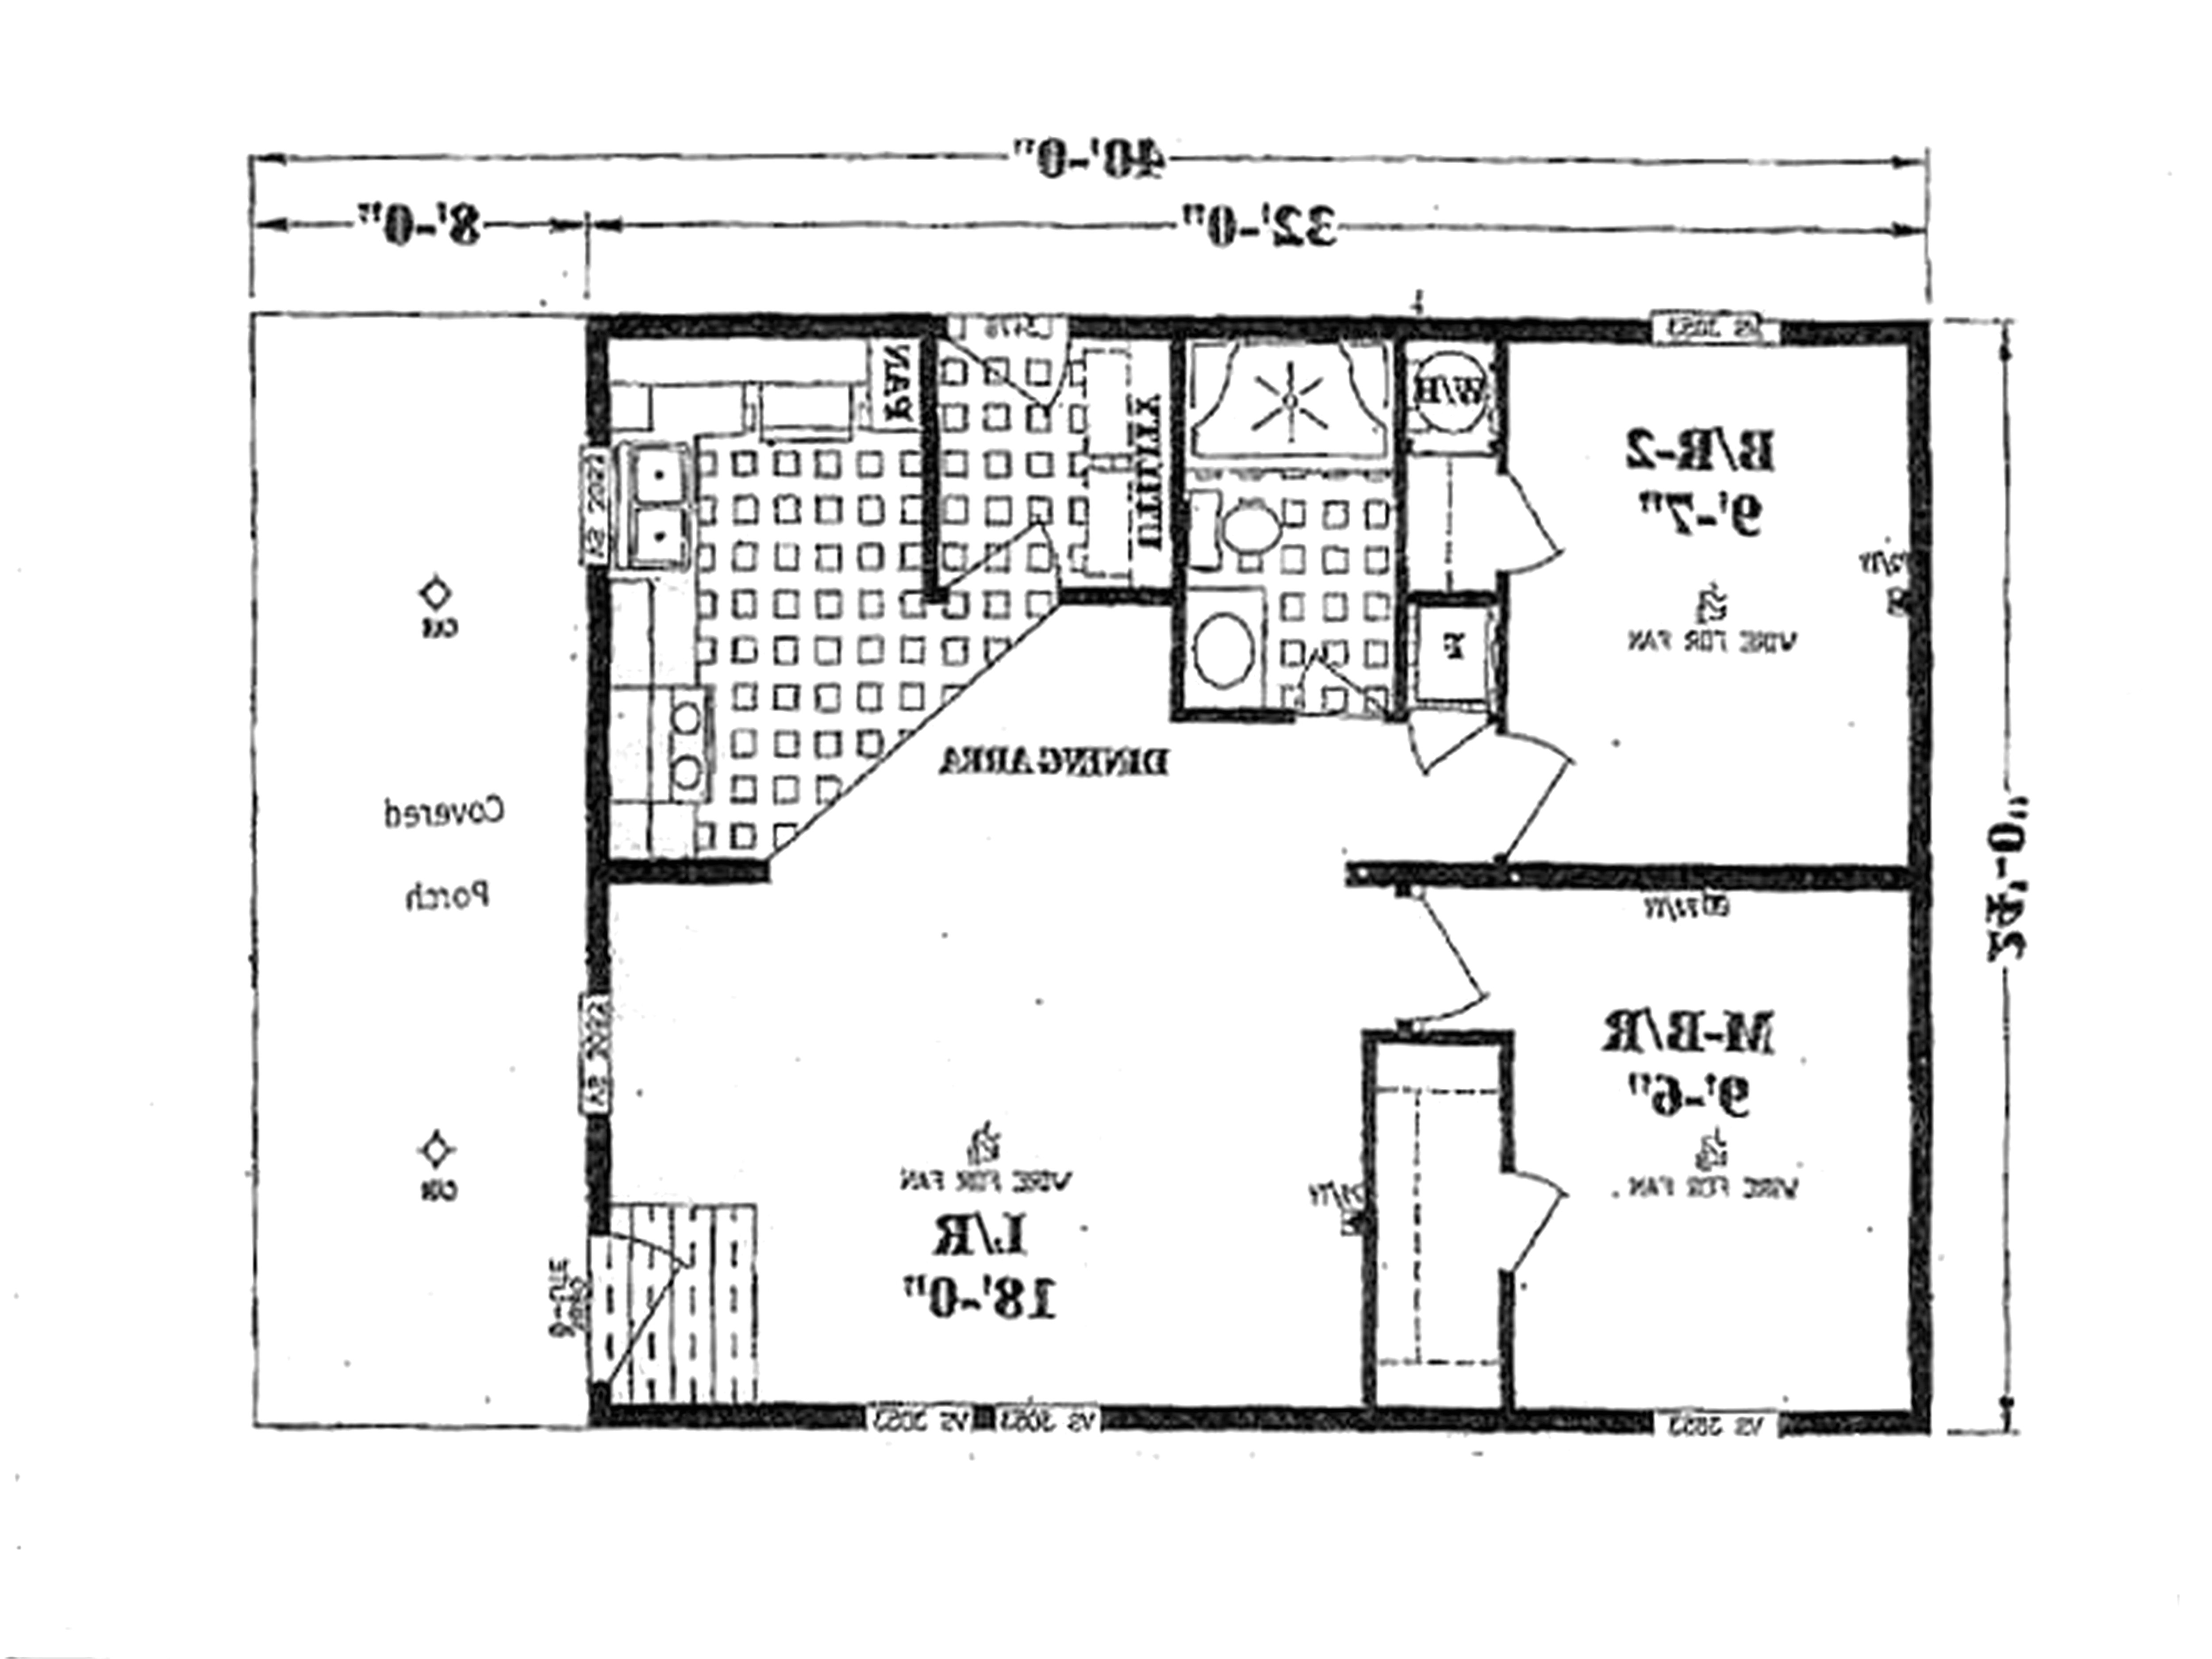 nohl crest homes floor plans elegant nohl crest homes floor plans best 50 awesome skogman homes floor